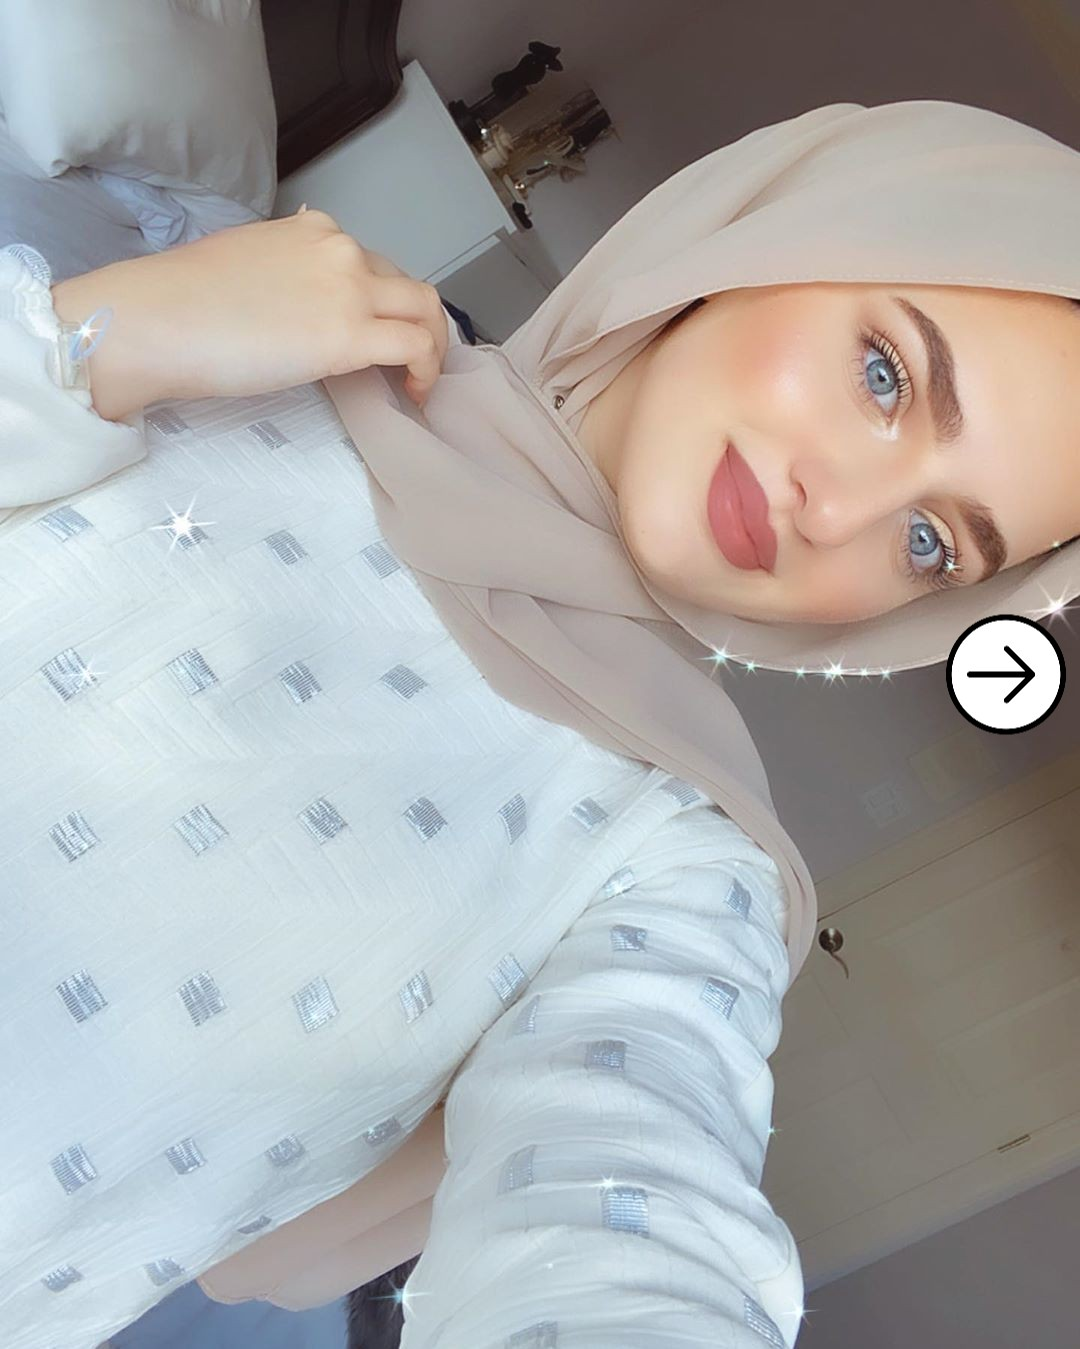 Noura Abdi: Hijabi instagram model that's breaking the internet 4